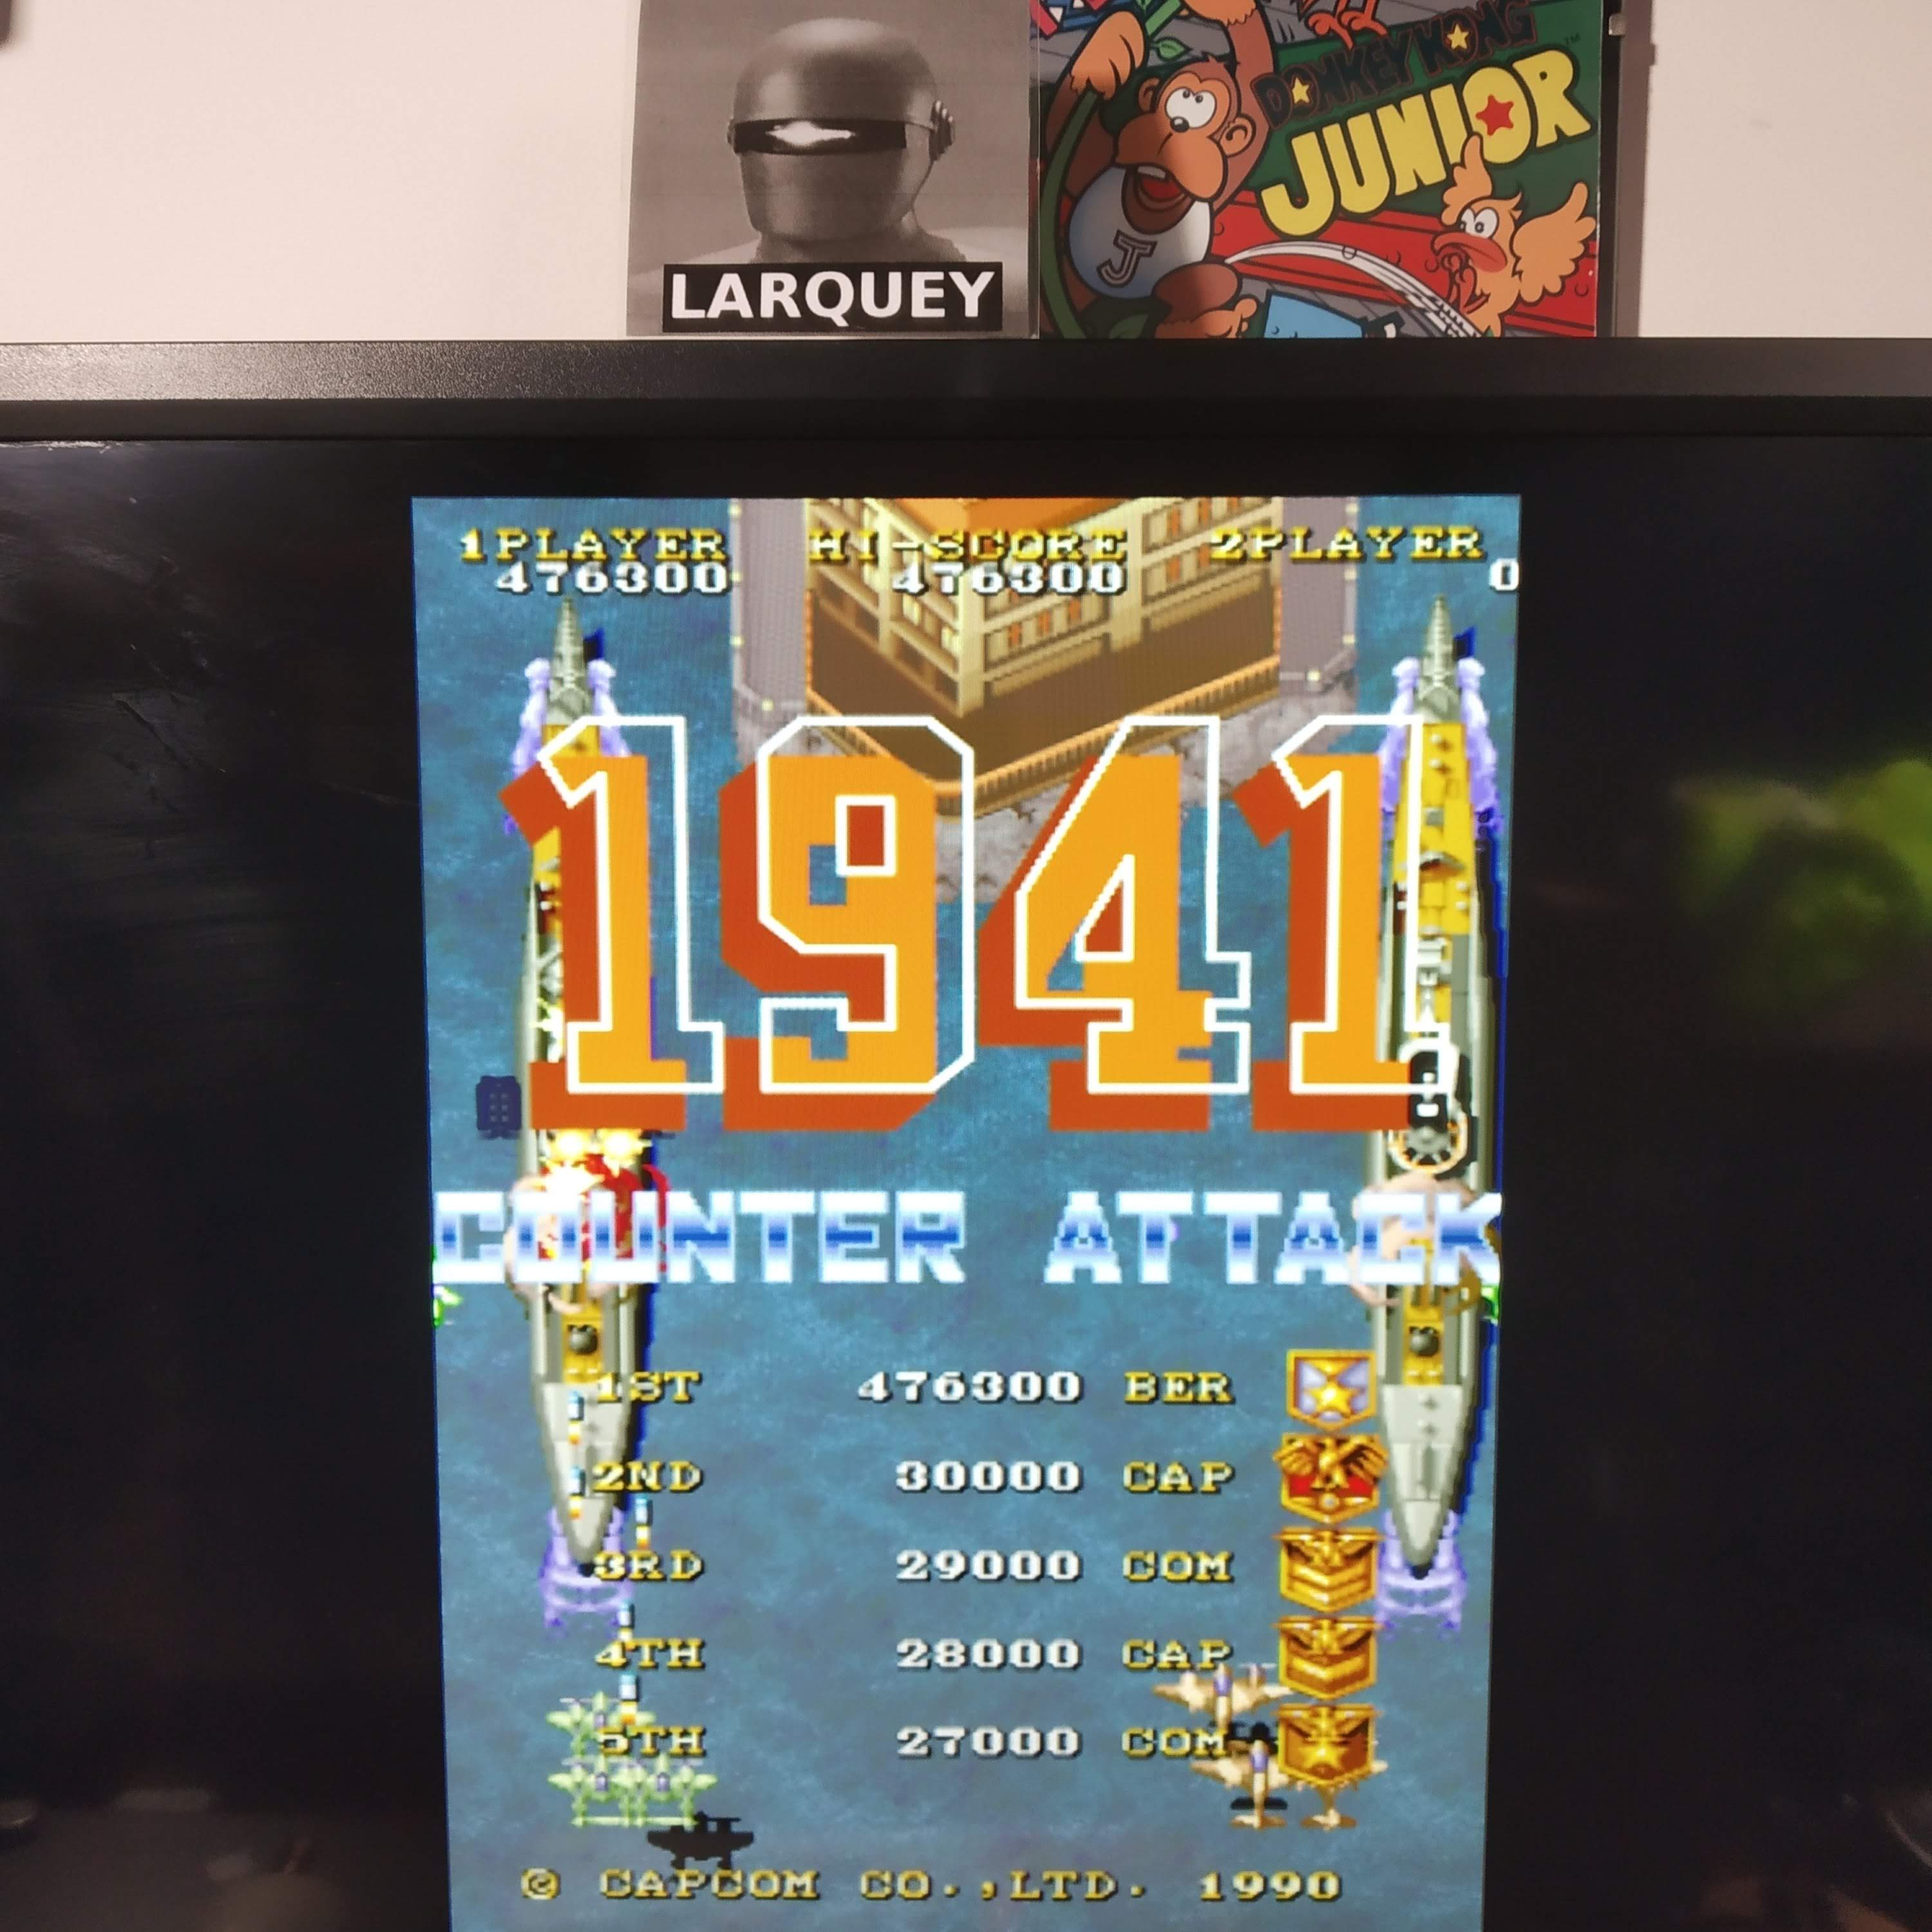 Larquey: Capcom Classics Vol 2: 1941 Counter Attack [Easiest] (Playstation 2 Emulated) 476,300 points on 2020-08-12 13:11:10